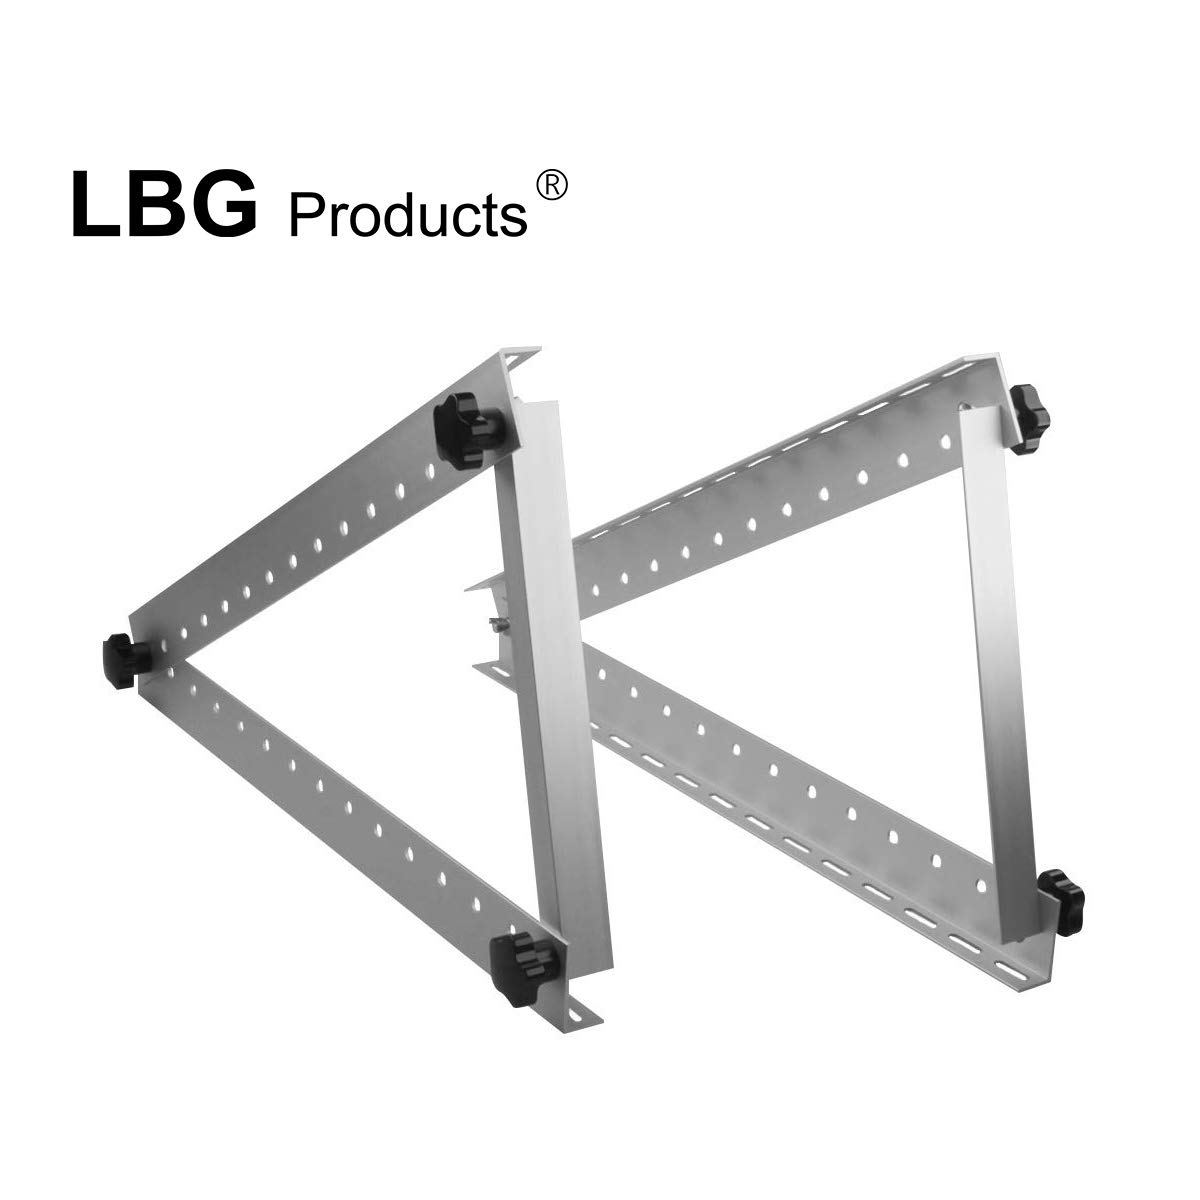 LBG Products Adjustable Solar Panel Mount Brackets with Foldable Tilt Legs Support up to 100 Watt Solar Panel for Roof, RV,Boat and Any Flat Surface Off Grid by LBG Products